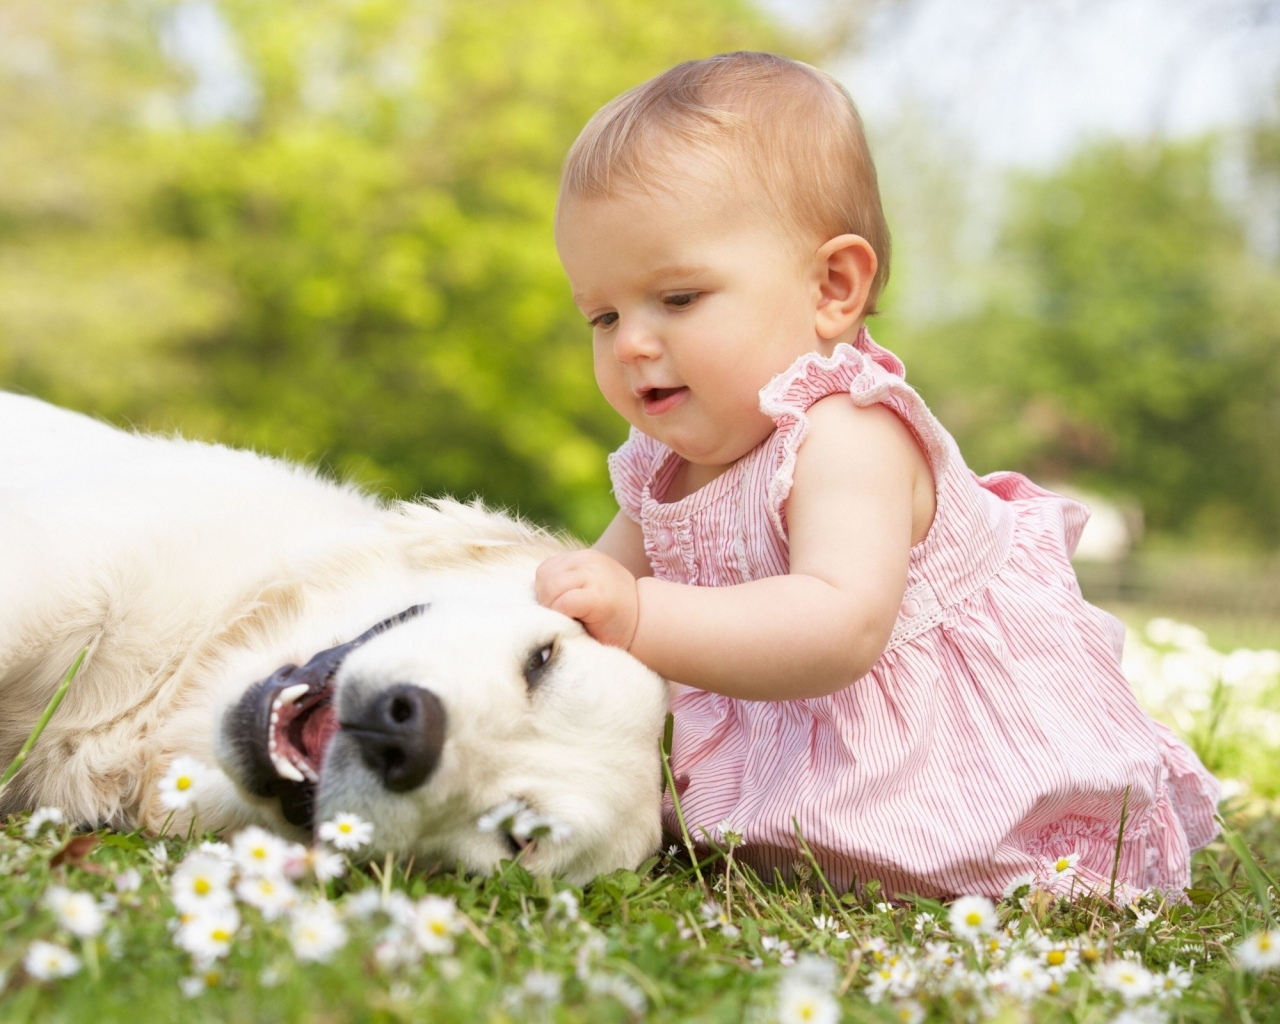 baby_toddler_girl_grass_dog_game_80631_1280x1024